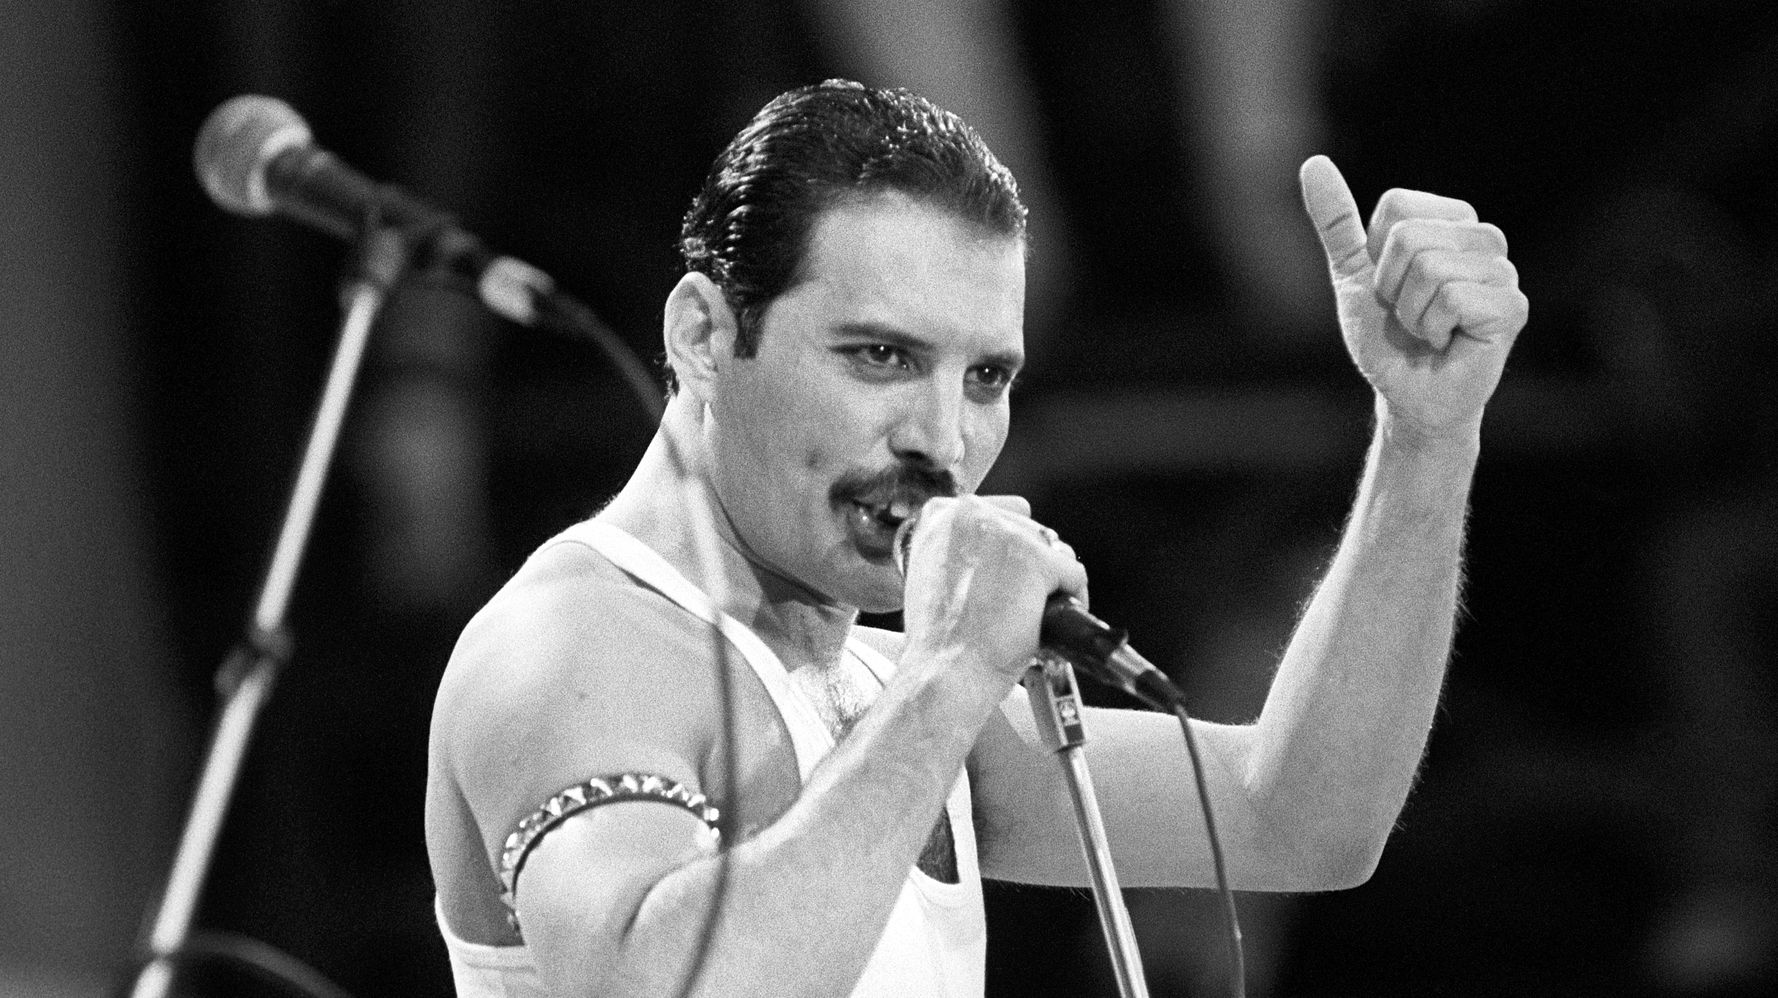 Freddie Mercury Sings 'Time Waits For No One' In Never